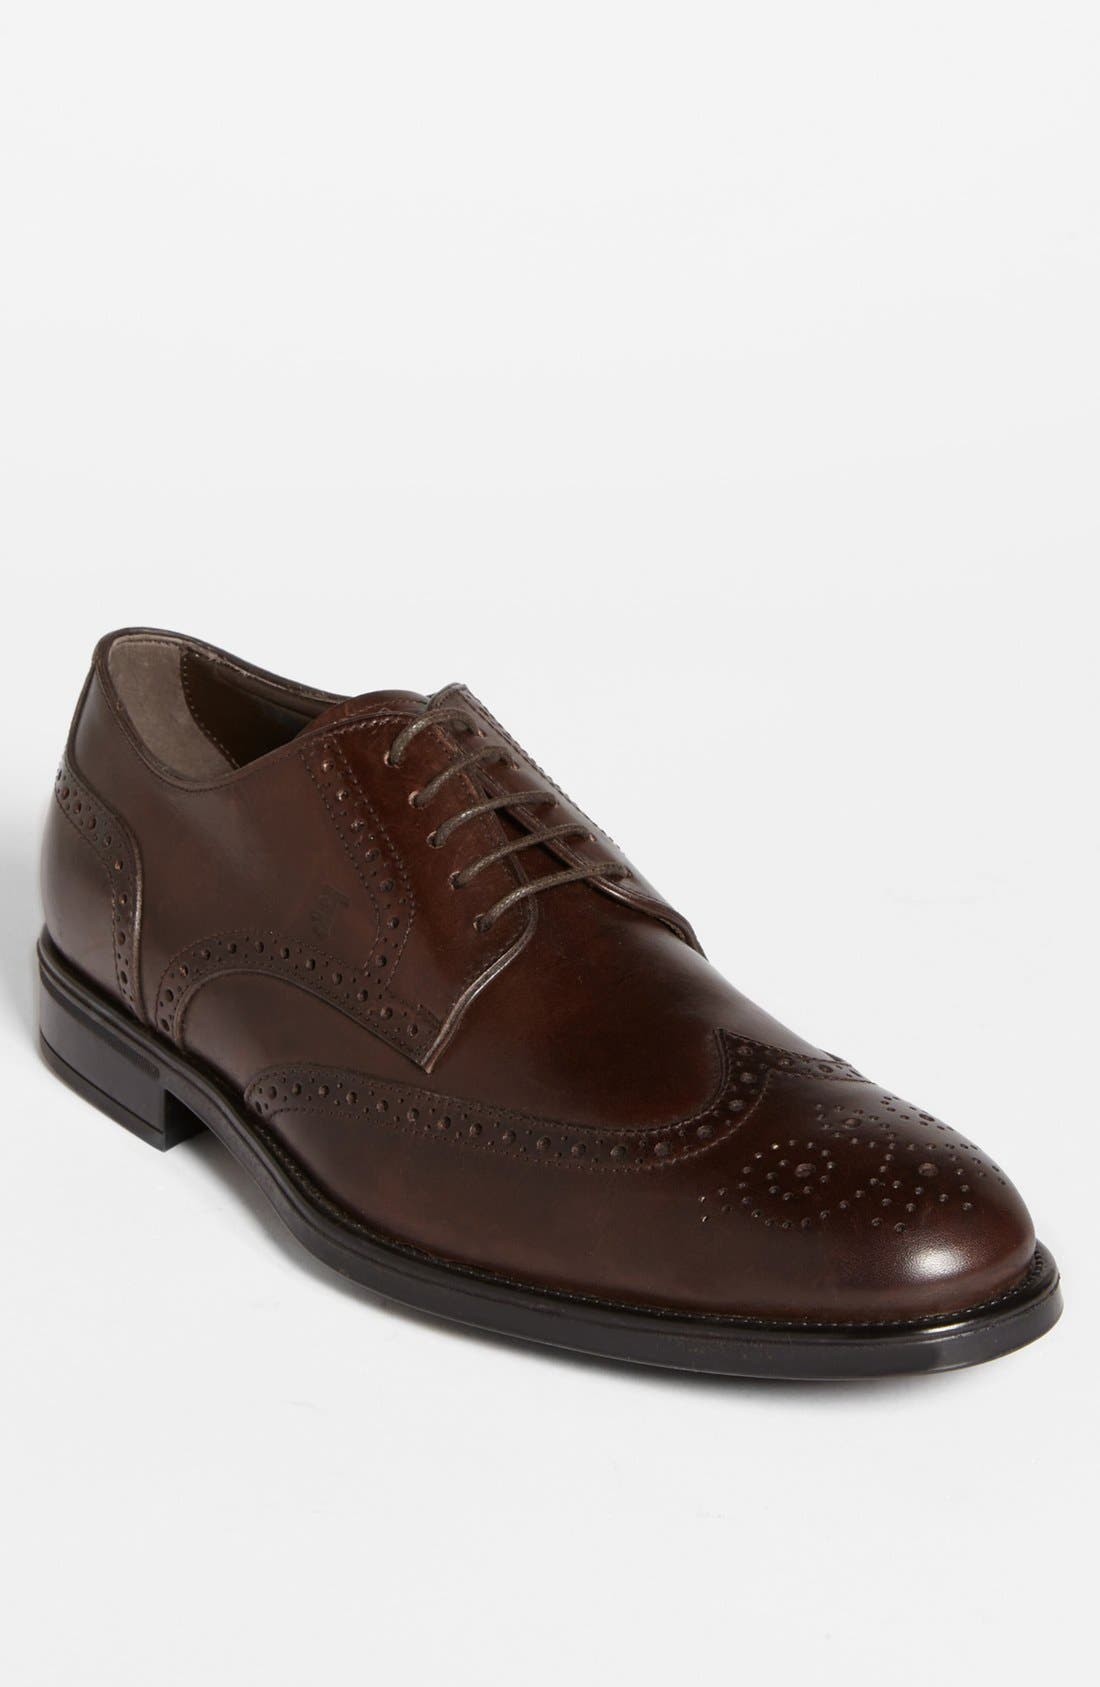 Alternate Image 1 Selected - Tod's 'Derby' Wingtip